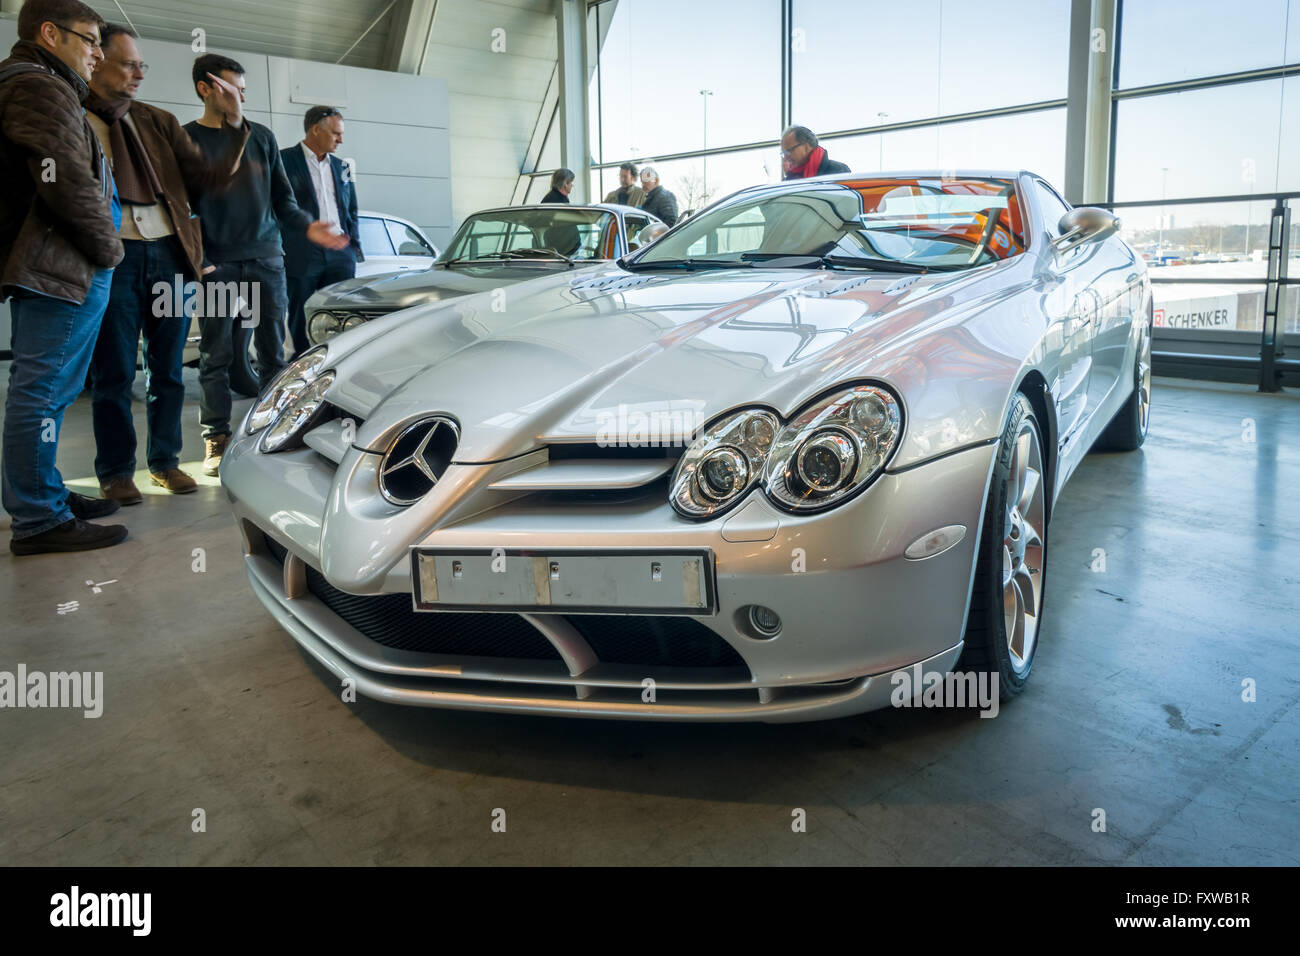 Grand tourer car Mercedes-Benz SLR McLaren, 2006. - Stock Image